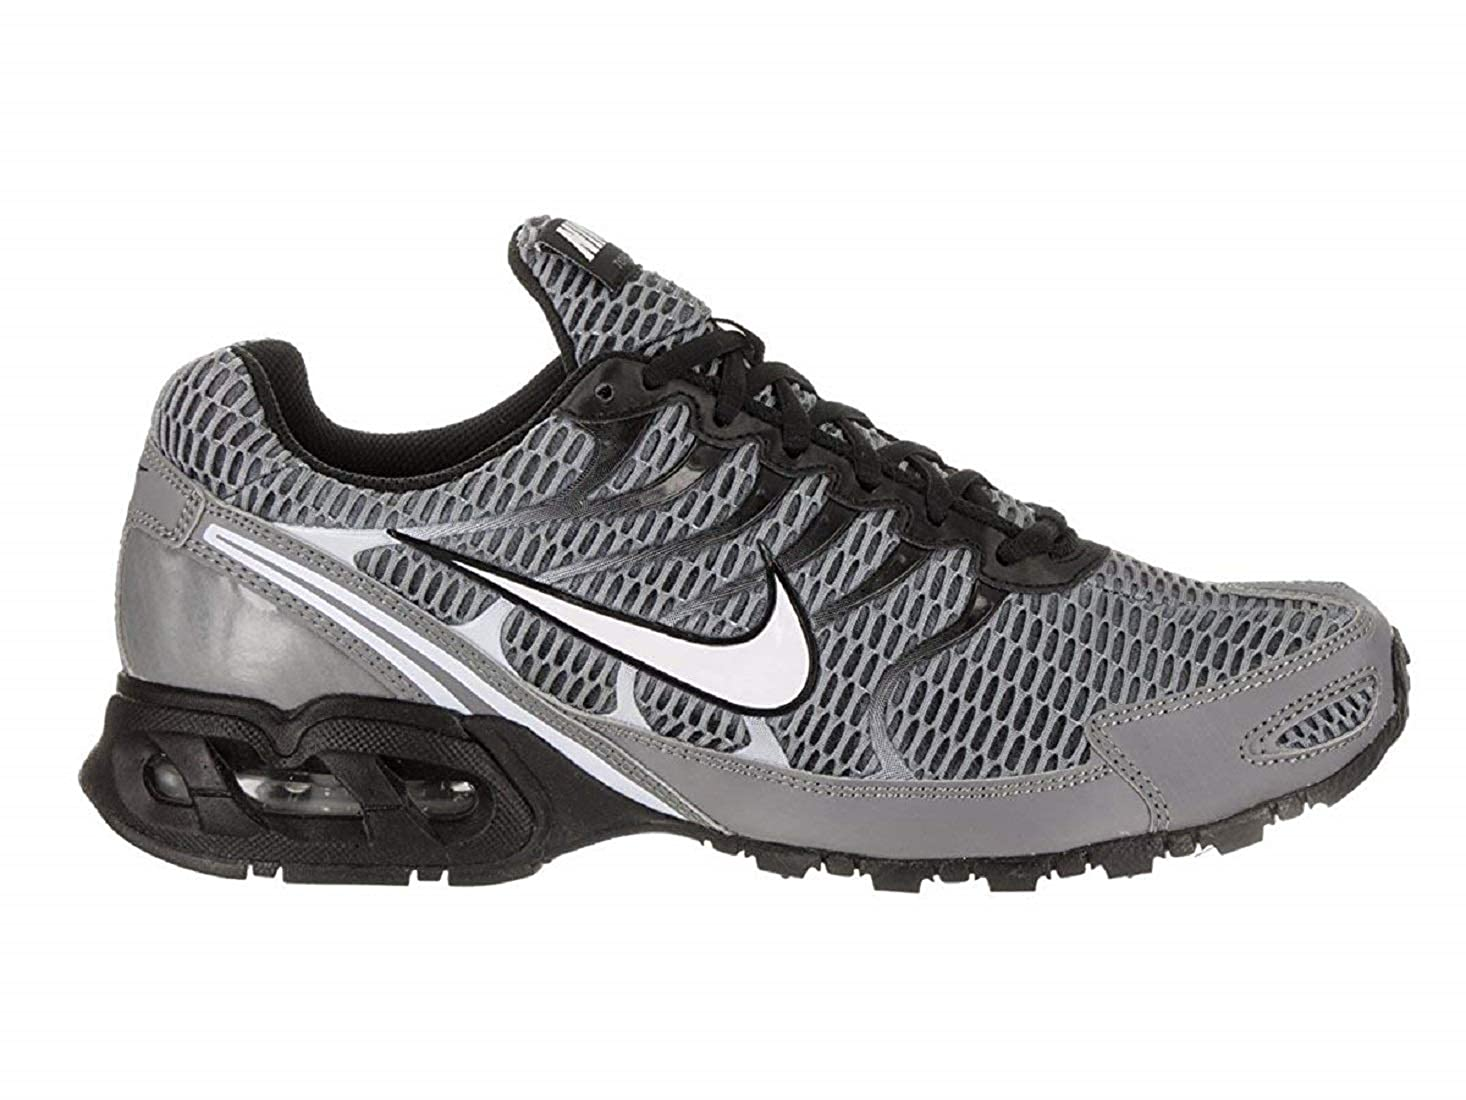 9b5d404b5 Amazon.com | Nike Men's Air Max Torch 4 Running Shoe#343846-012 (11 ...